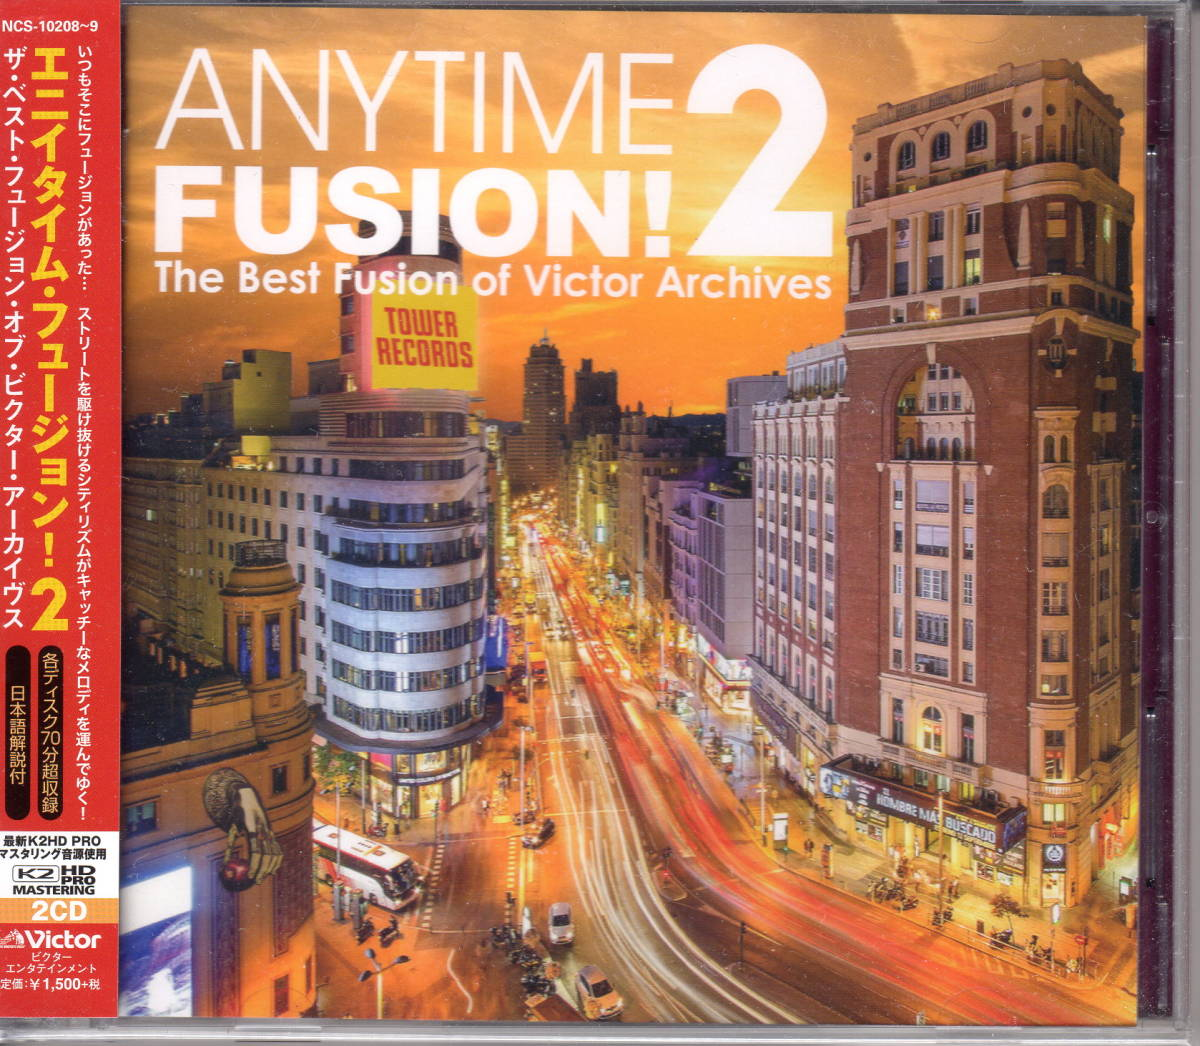 ♪♪ANYTIME FUSION!2 The Best Fusion of Victor Archives<タワーレコード限定>♪♪